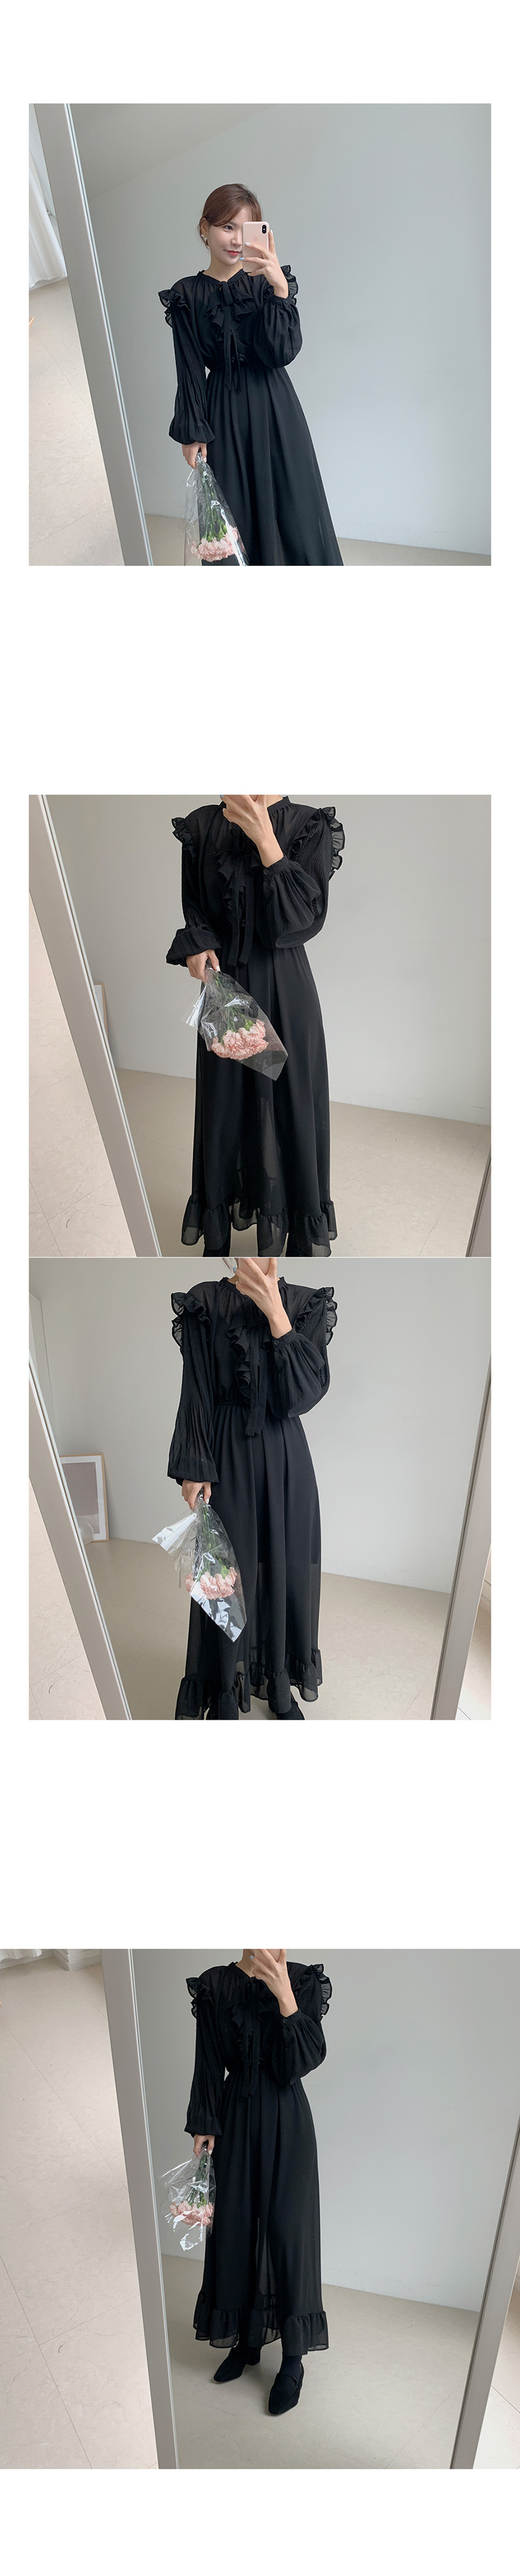 H5e2b84a80e8d41bdb49710f9b7e54fc7G - Autumn O-Neck Long Sleeves Chiffon Ruffles Maxi Dress